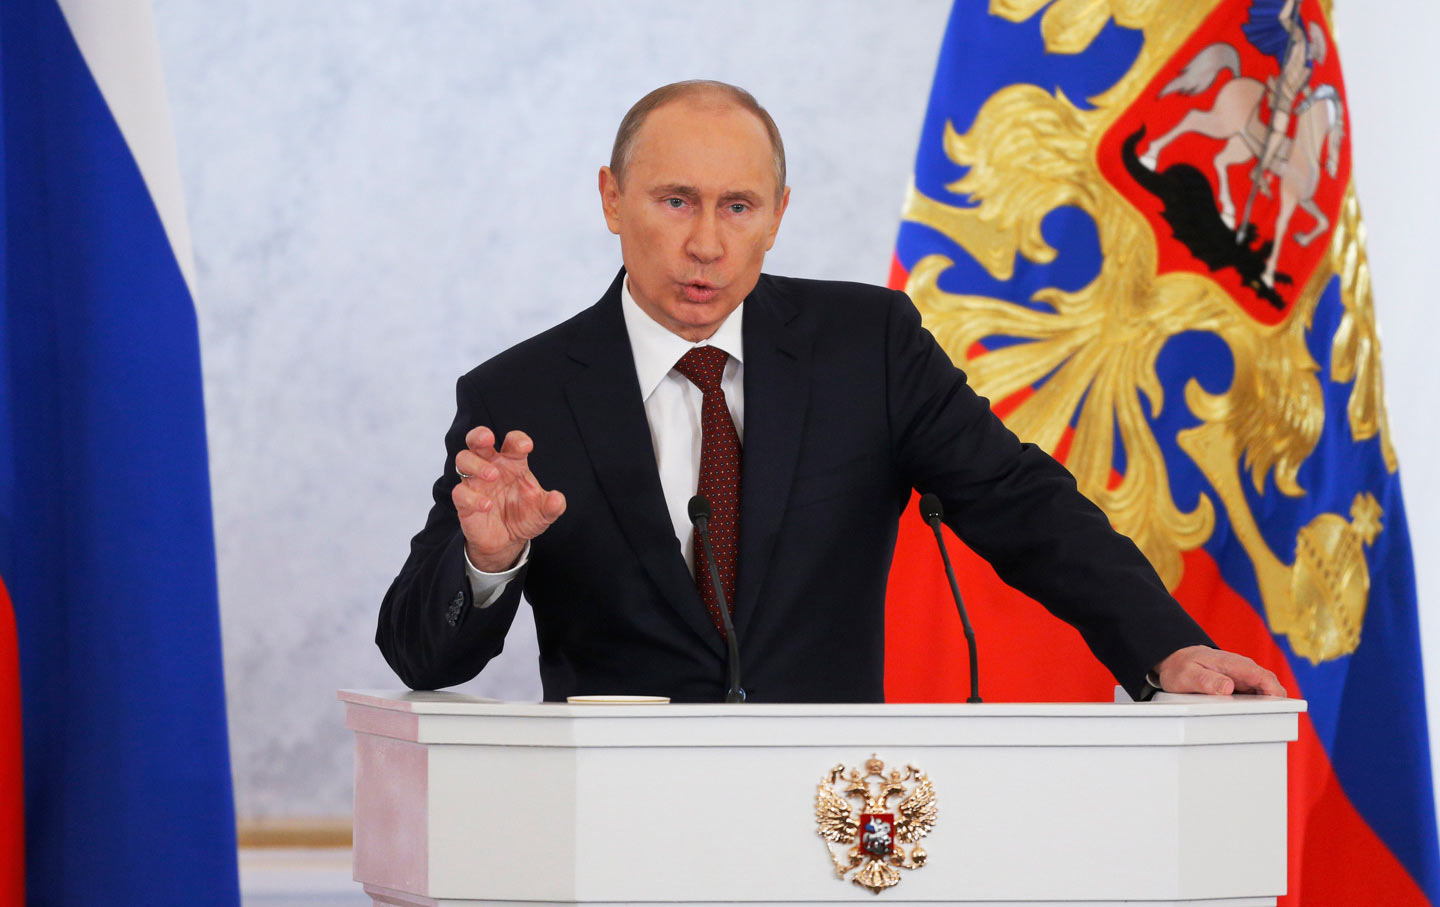 Putin_Russia_speech_newsite_ap_img